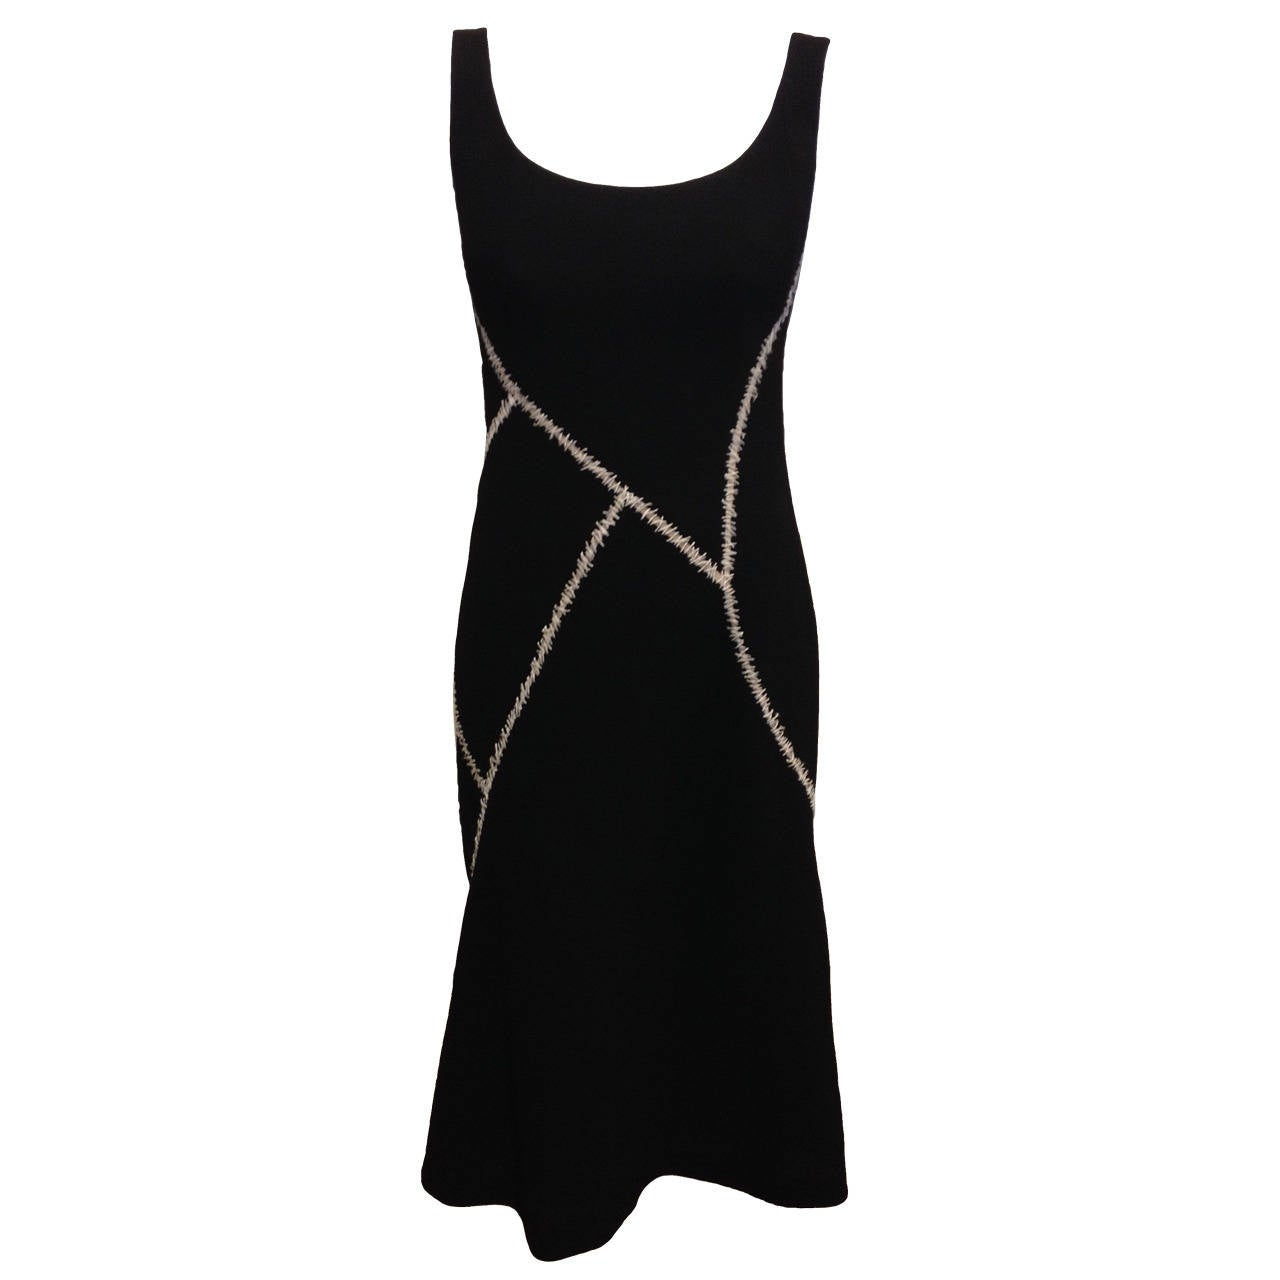 Alexander McQueen Black Dress with White Stitches For Sale